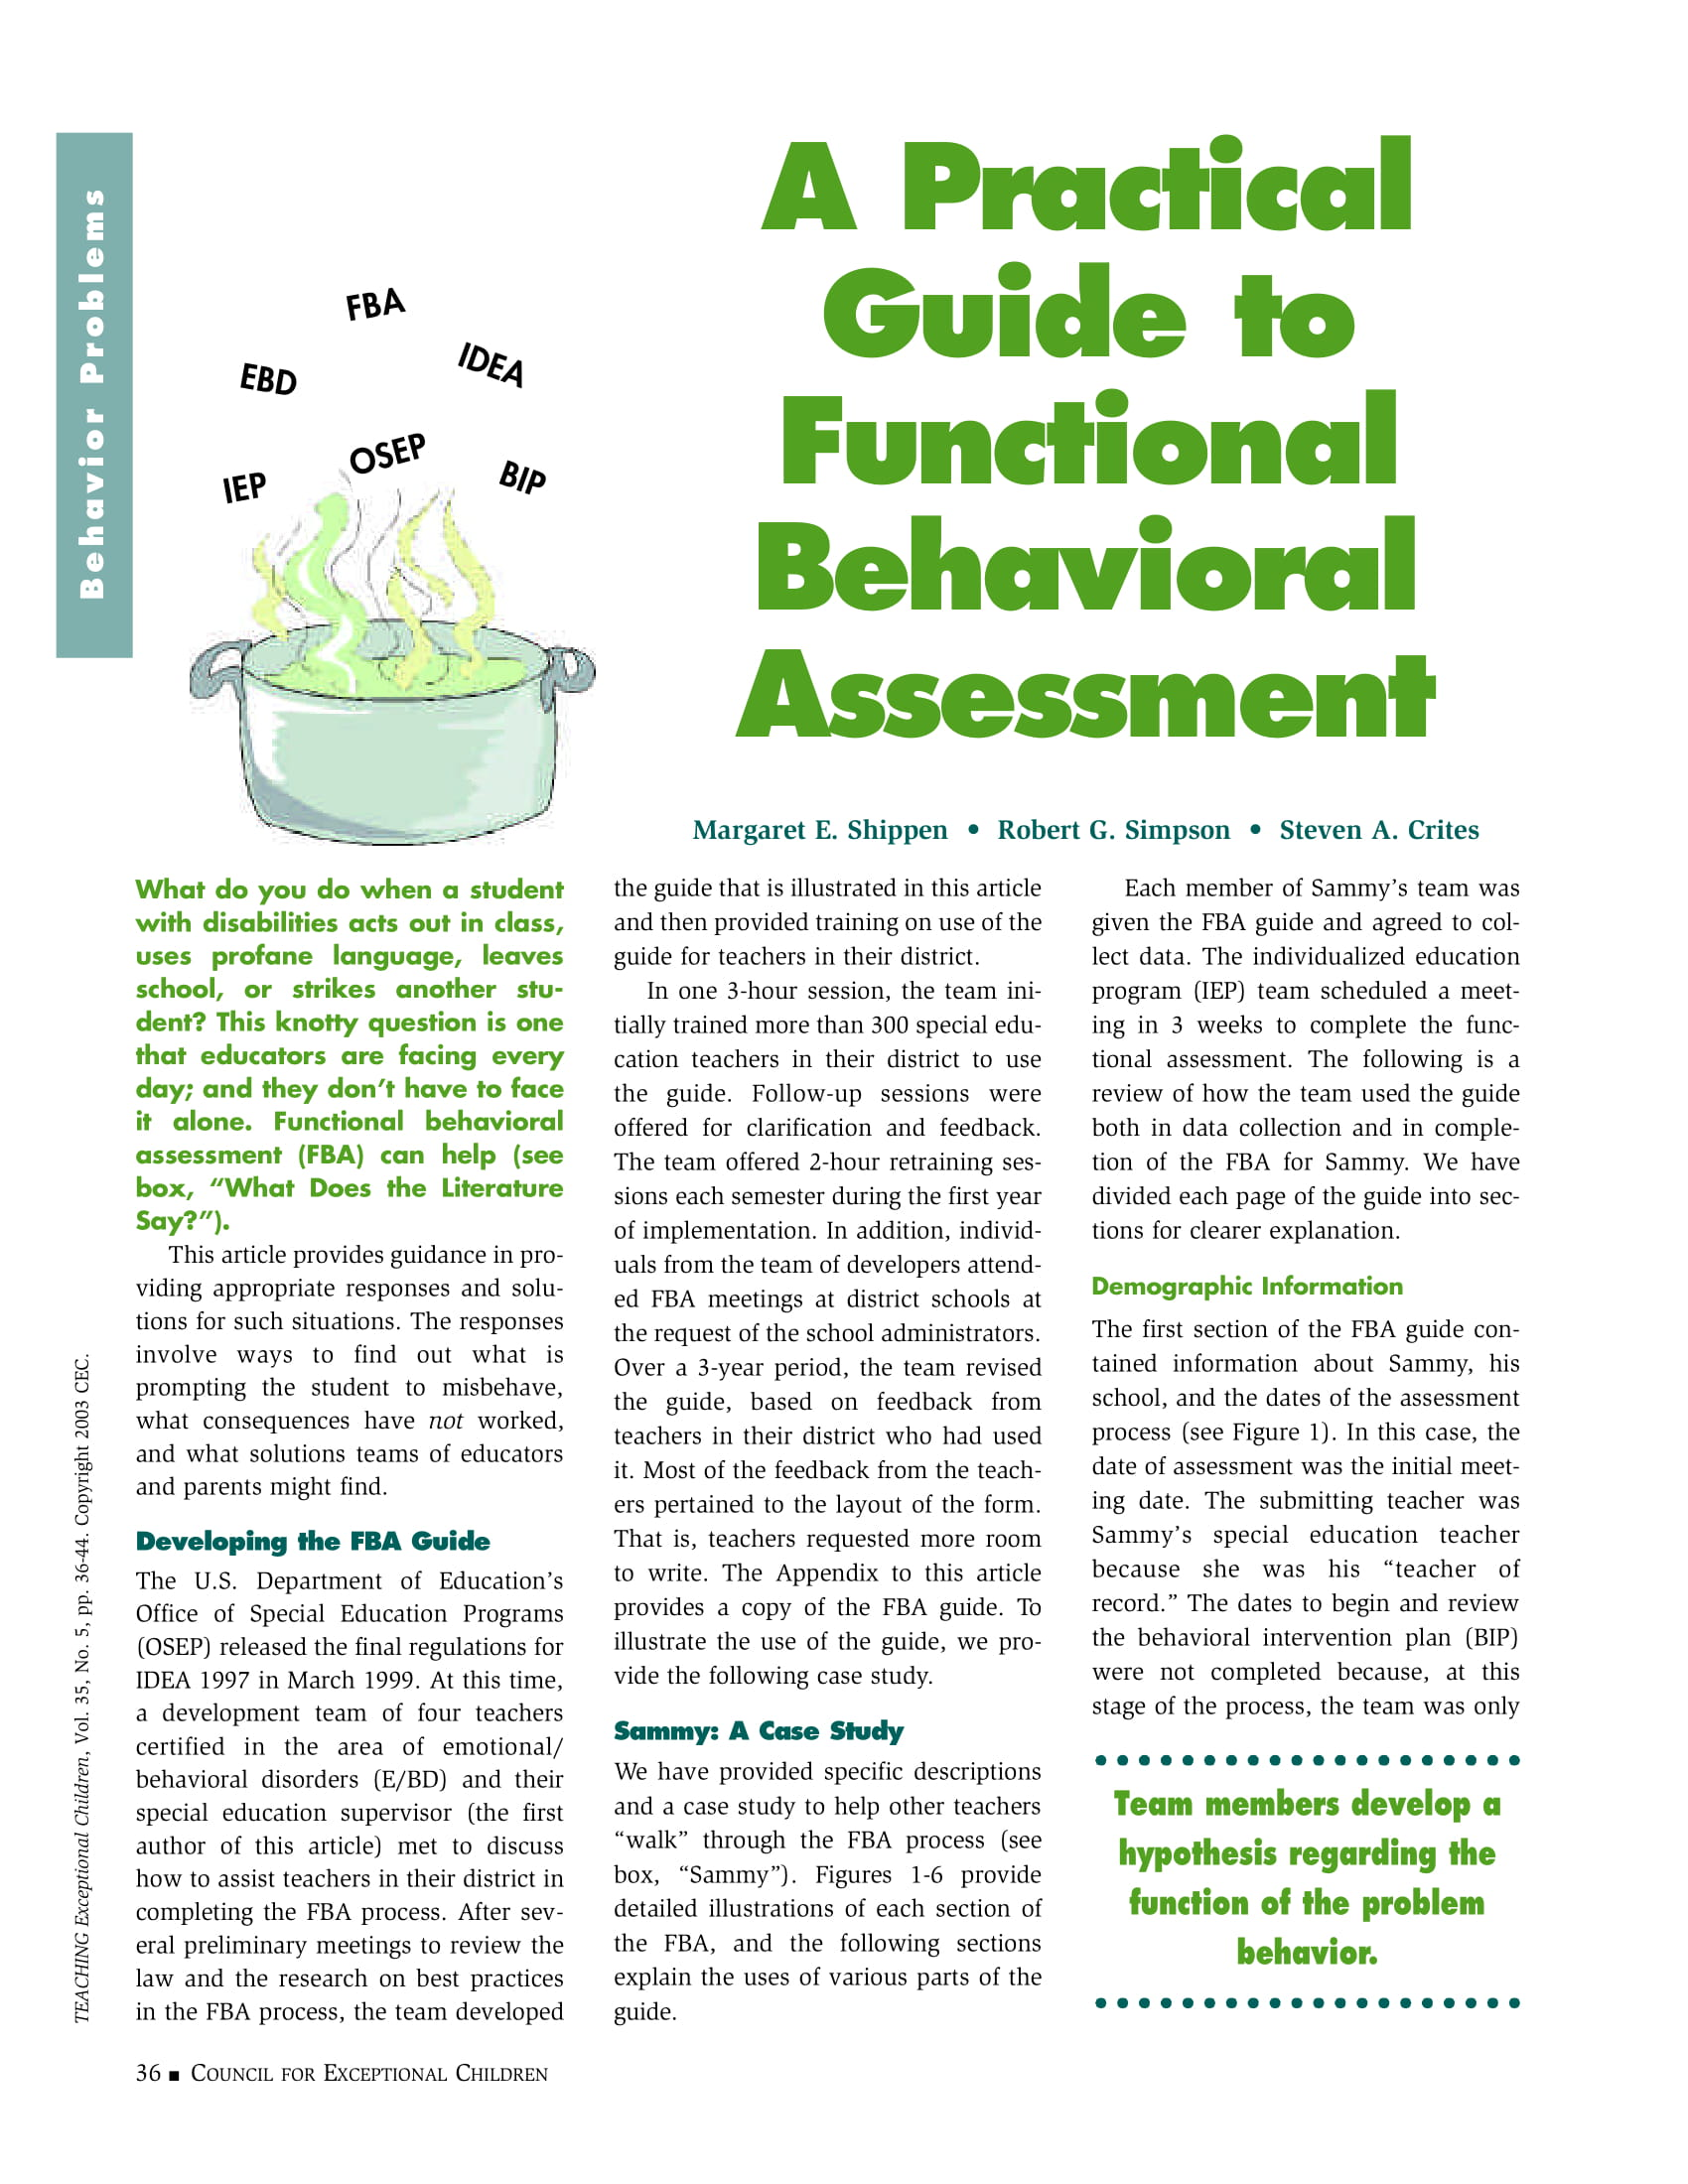 functional behavioral assessment practical guide example 1